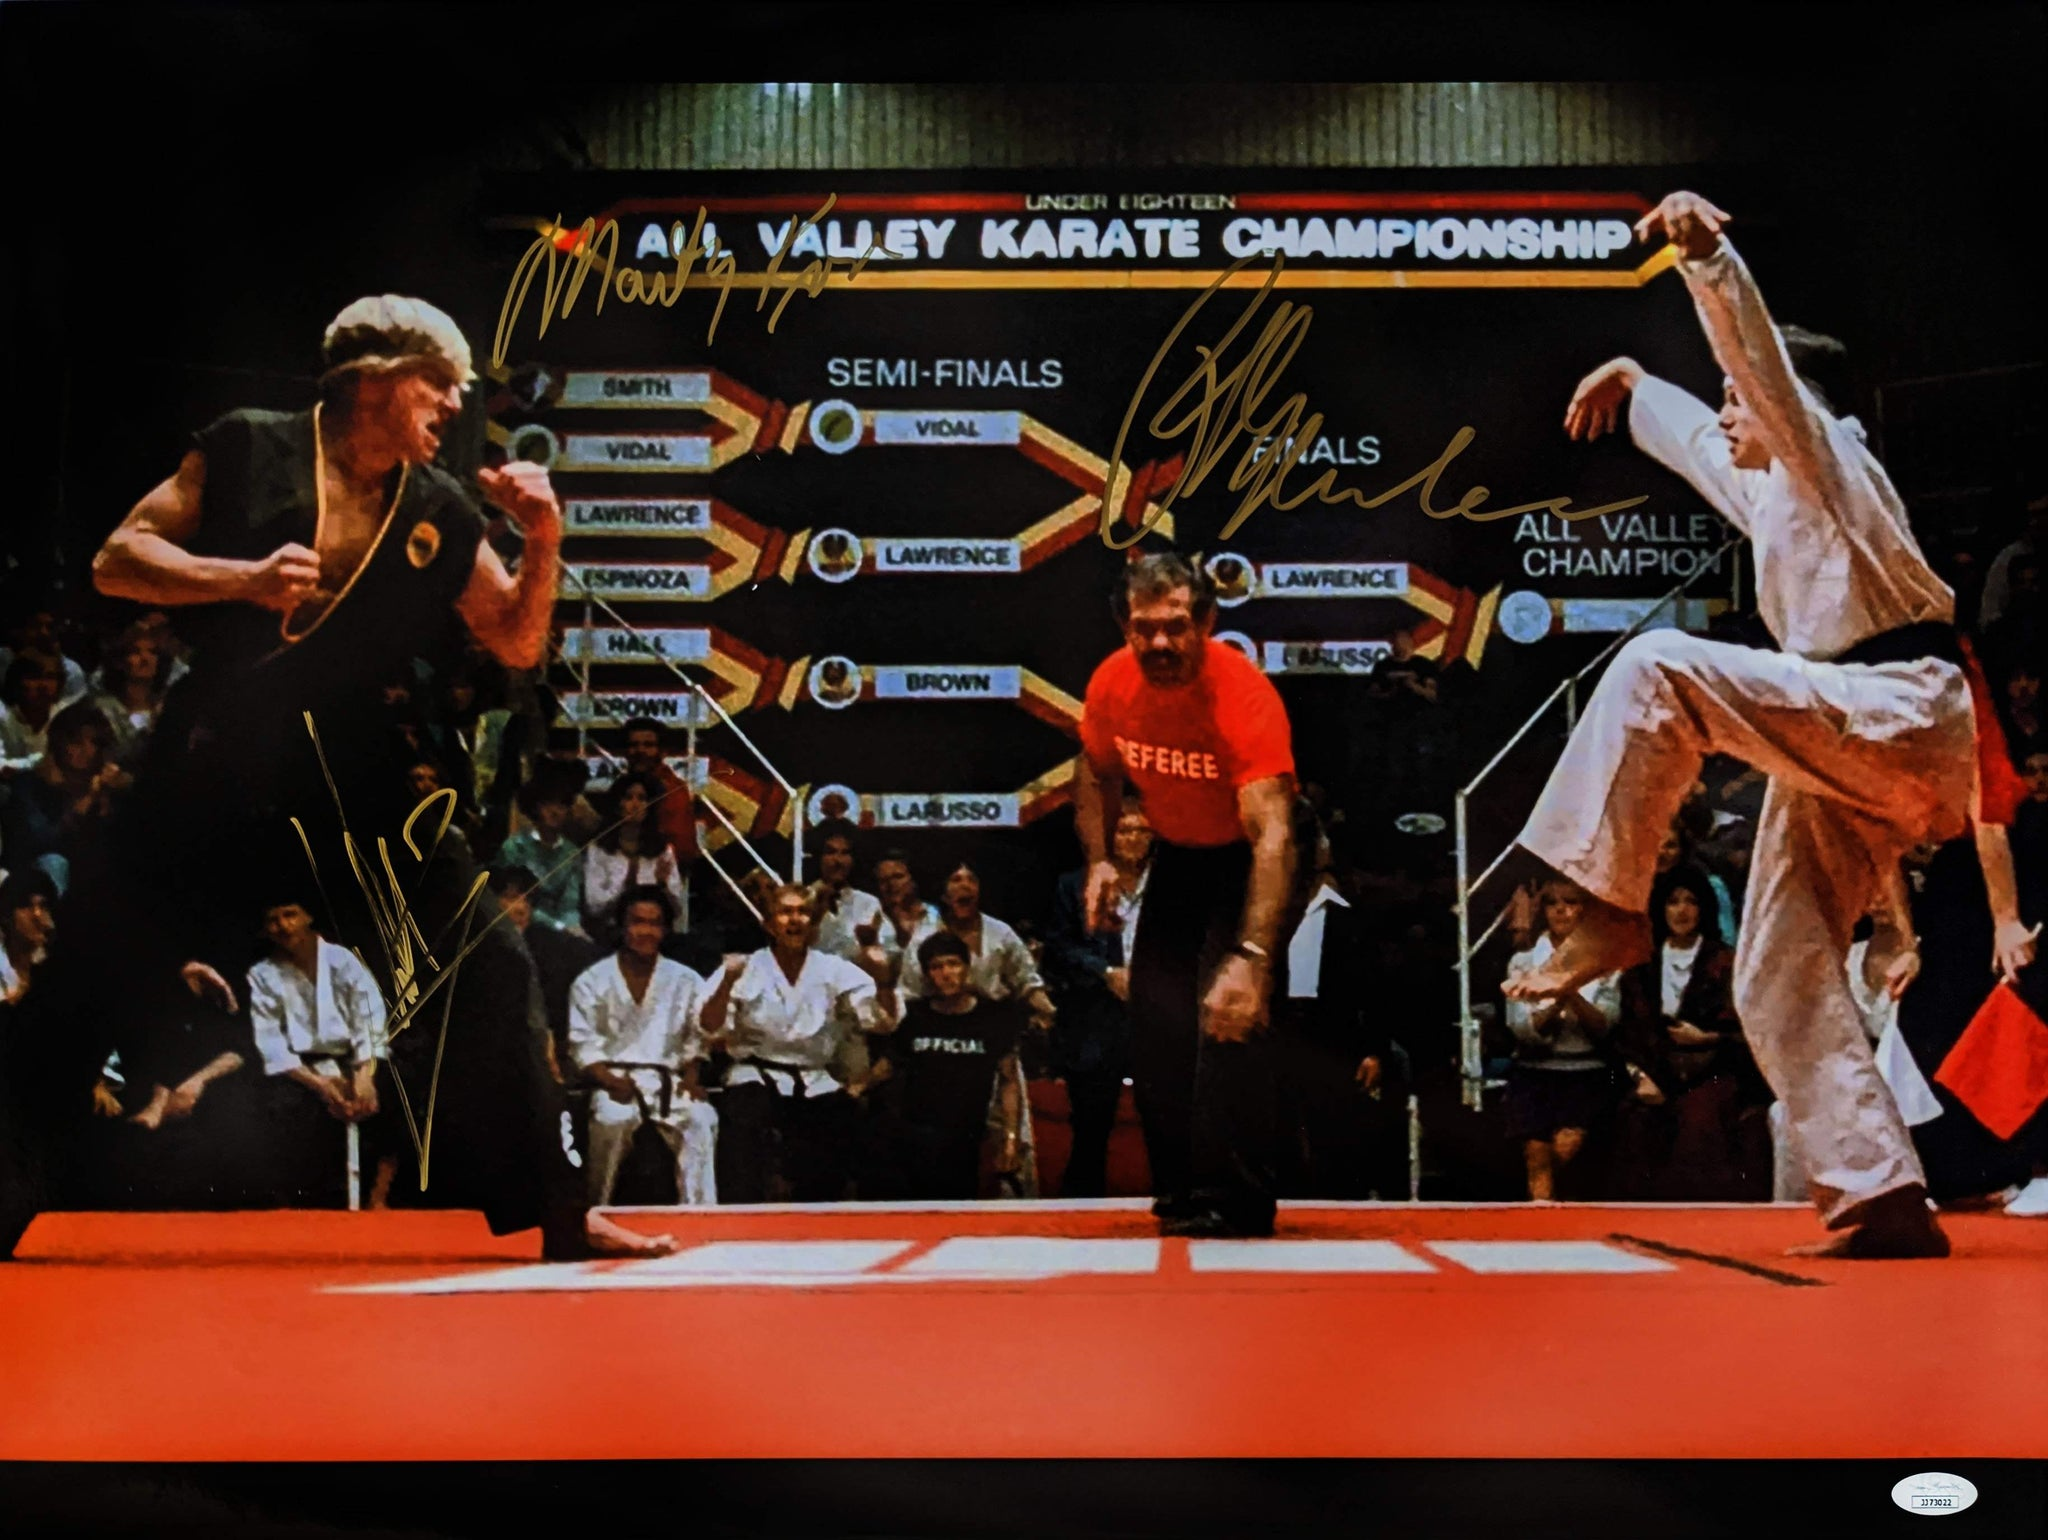 Karate Kid 18x24 Photo Poster Signed Autograph Macchio Zabka Kove JSA Certified COA GalaxyCon